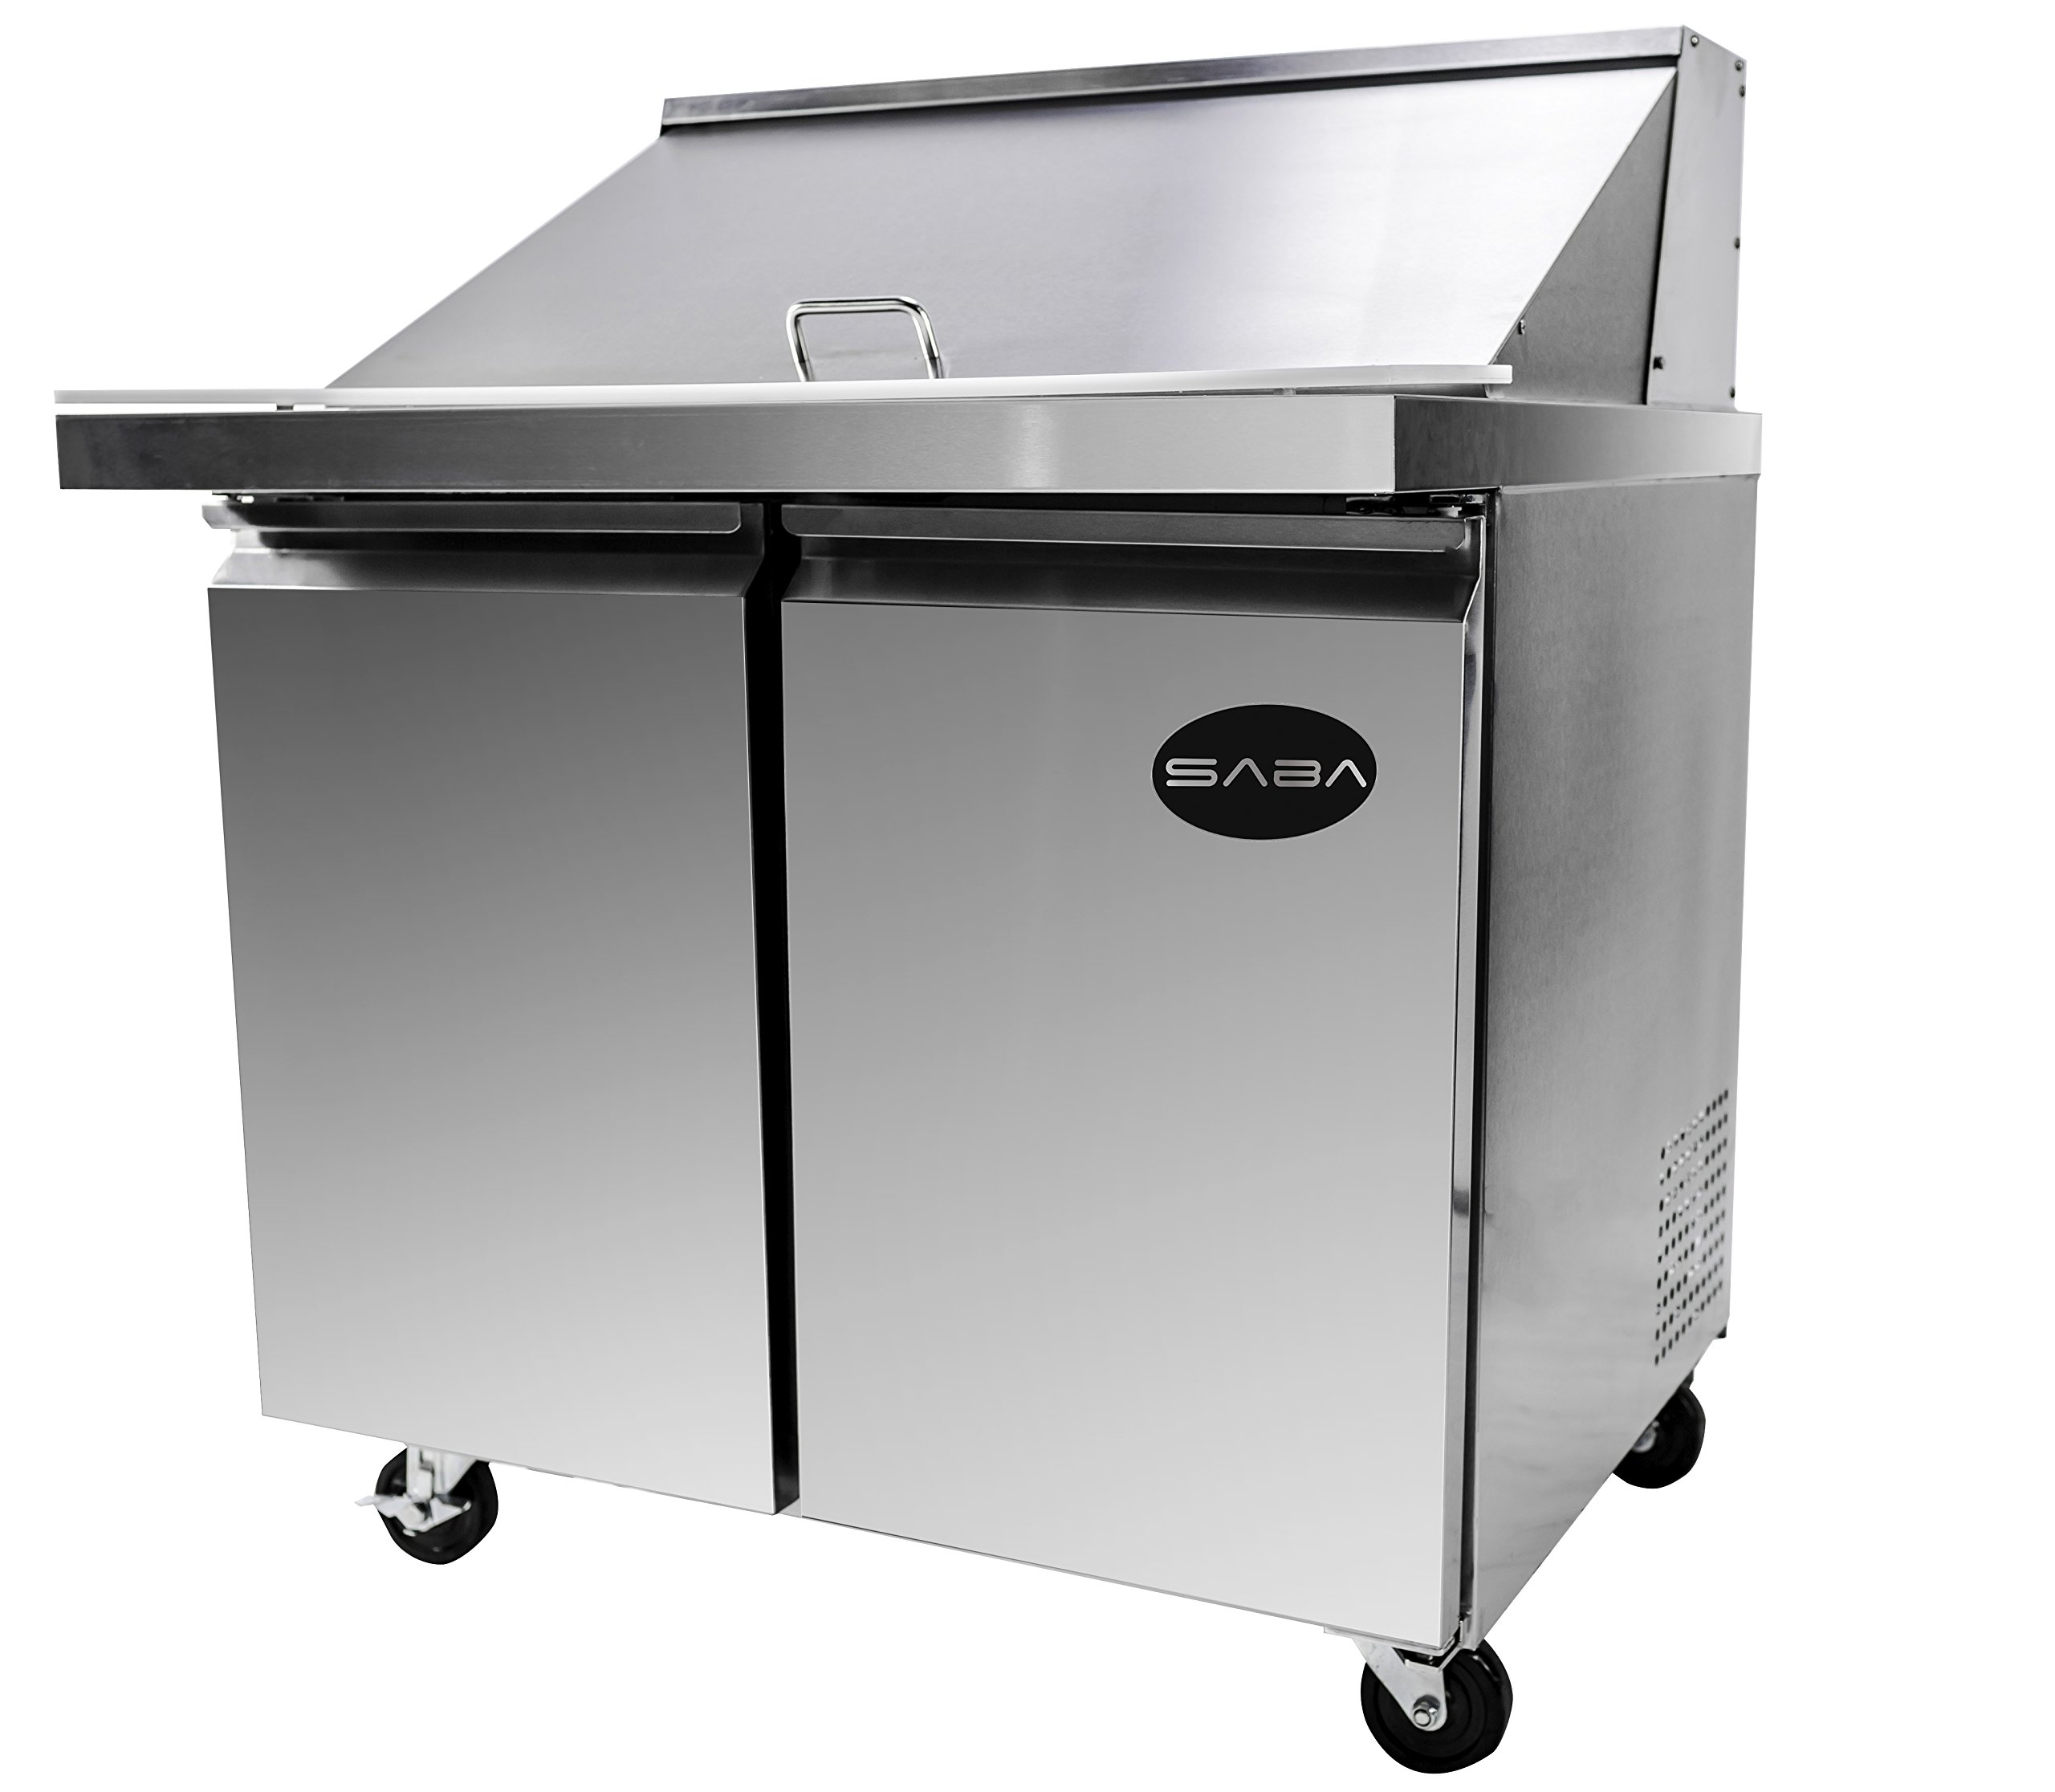 Heavy Duty Commercial Stainless Steel Mega Prep Table Refrigerator Cooler 2 Door 36""